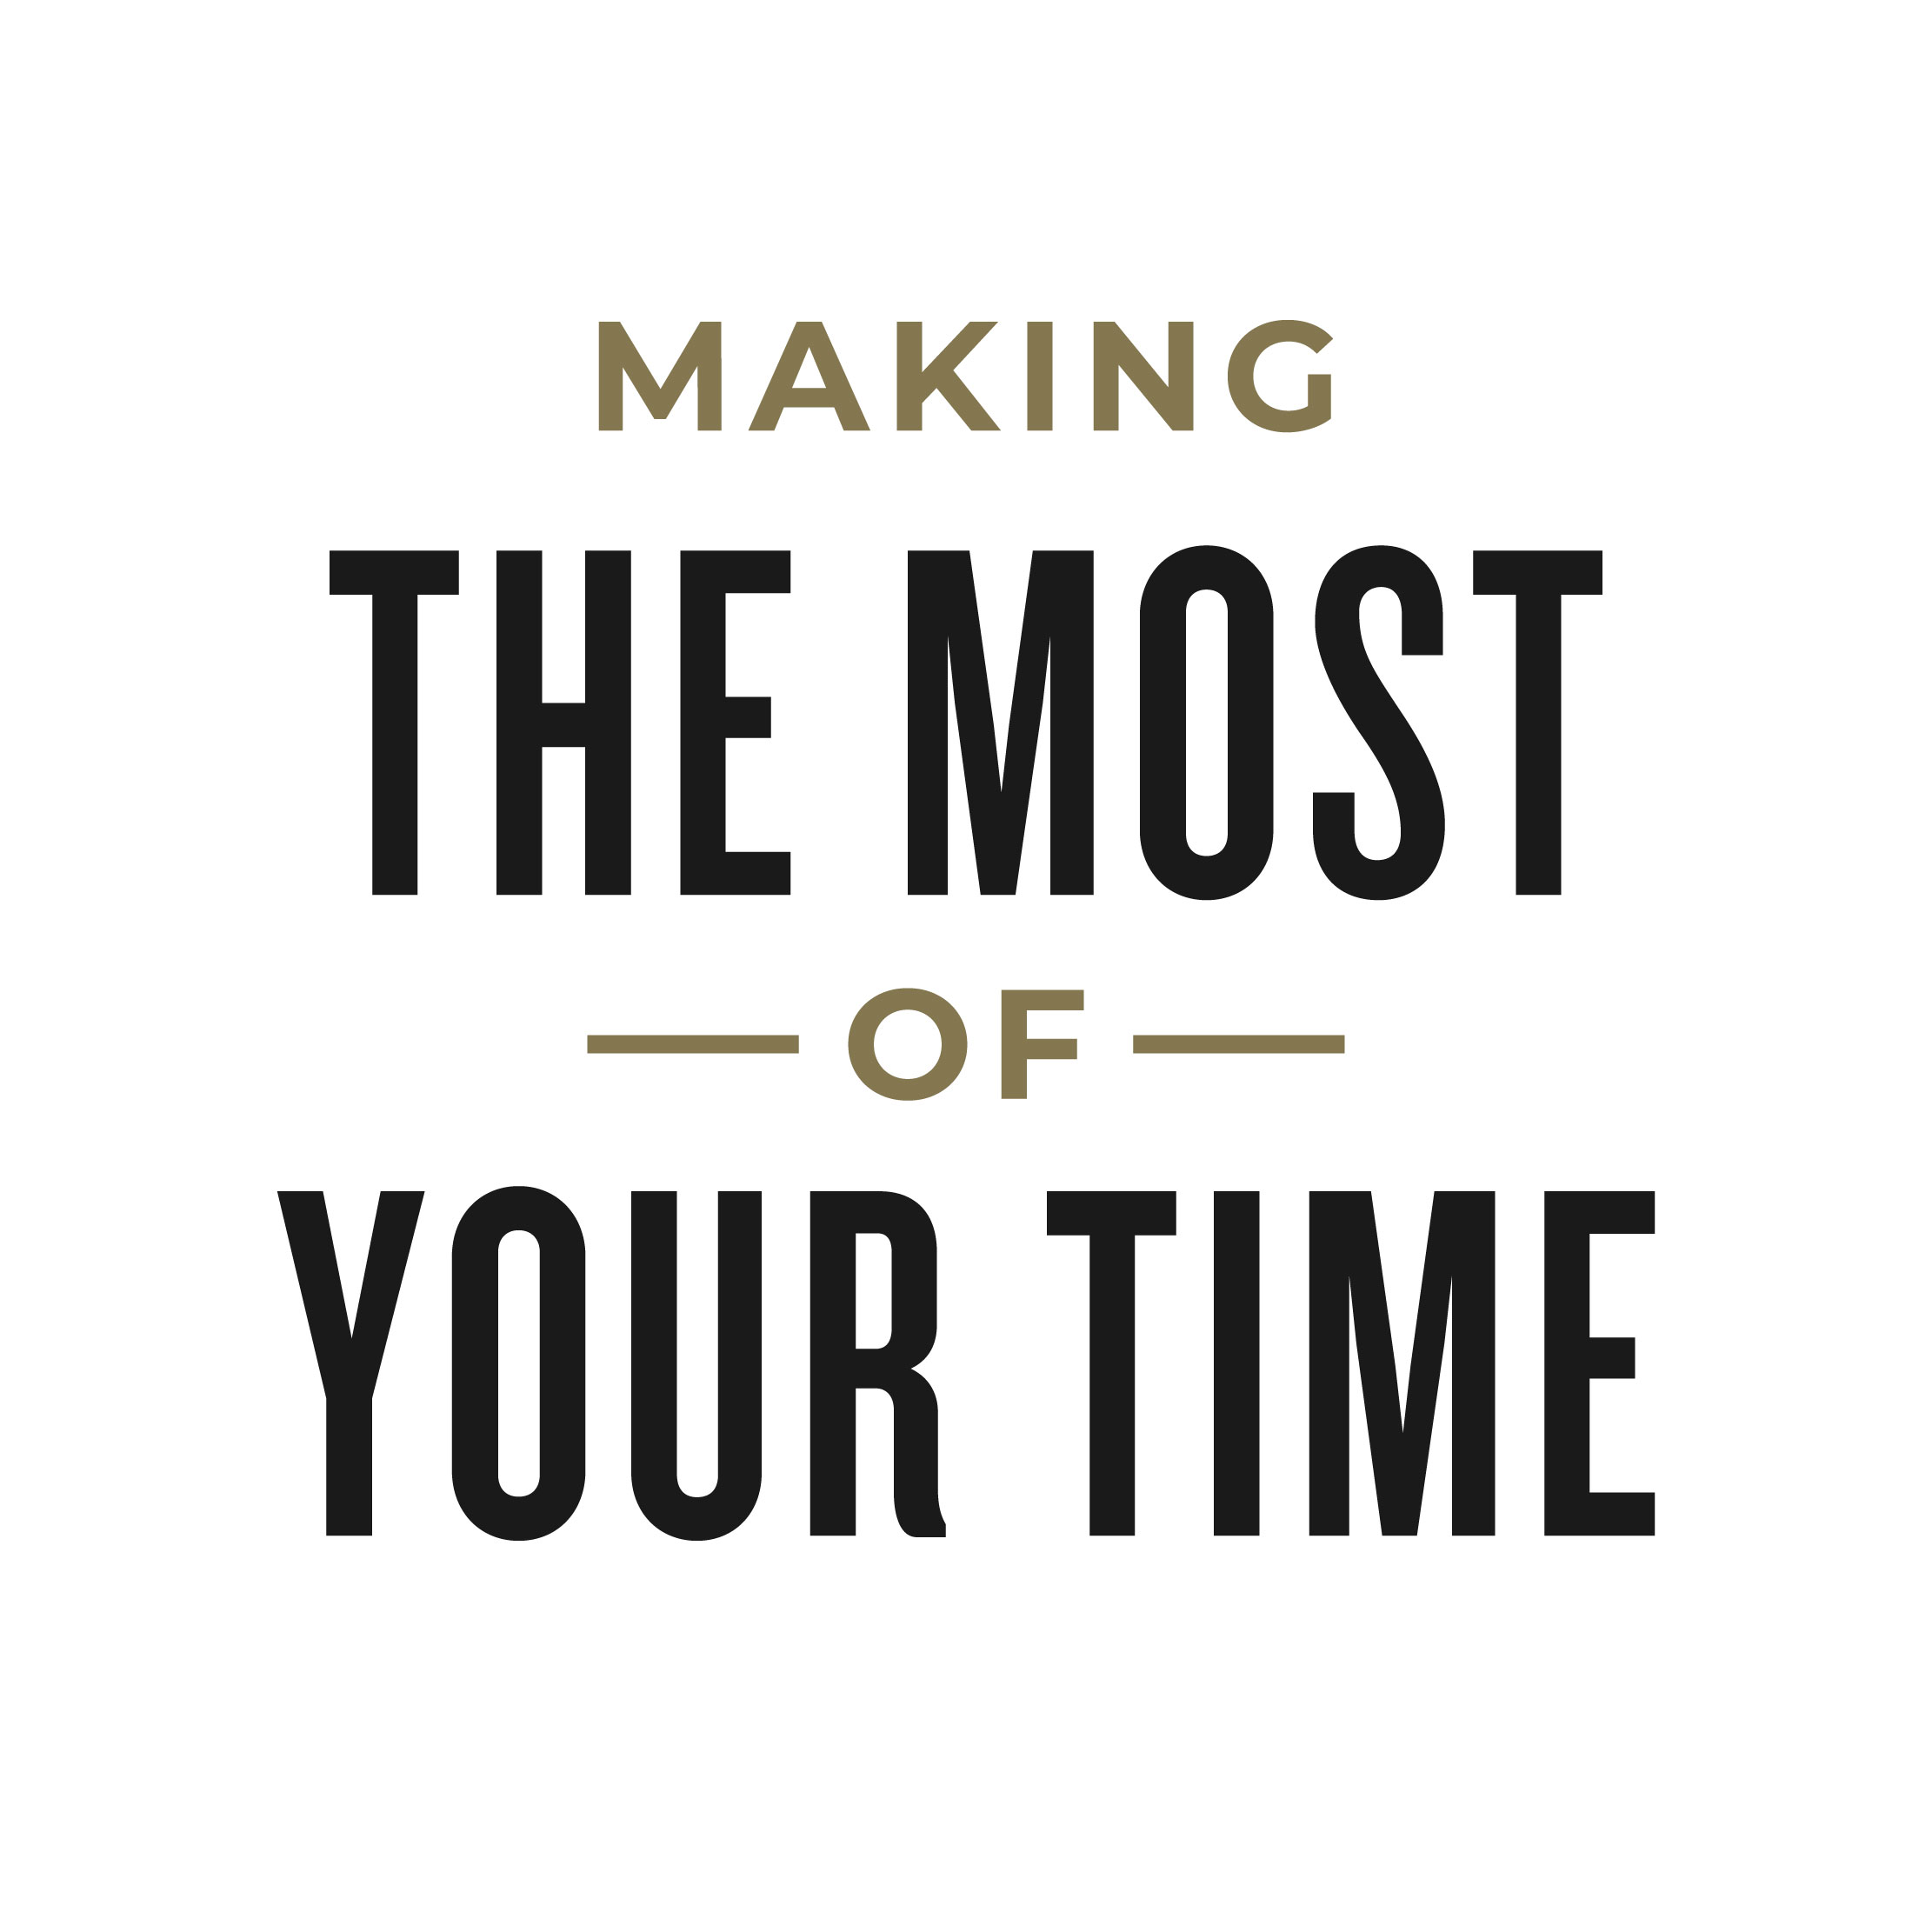 EP3 – Making the most of your time